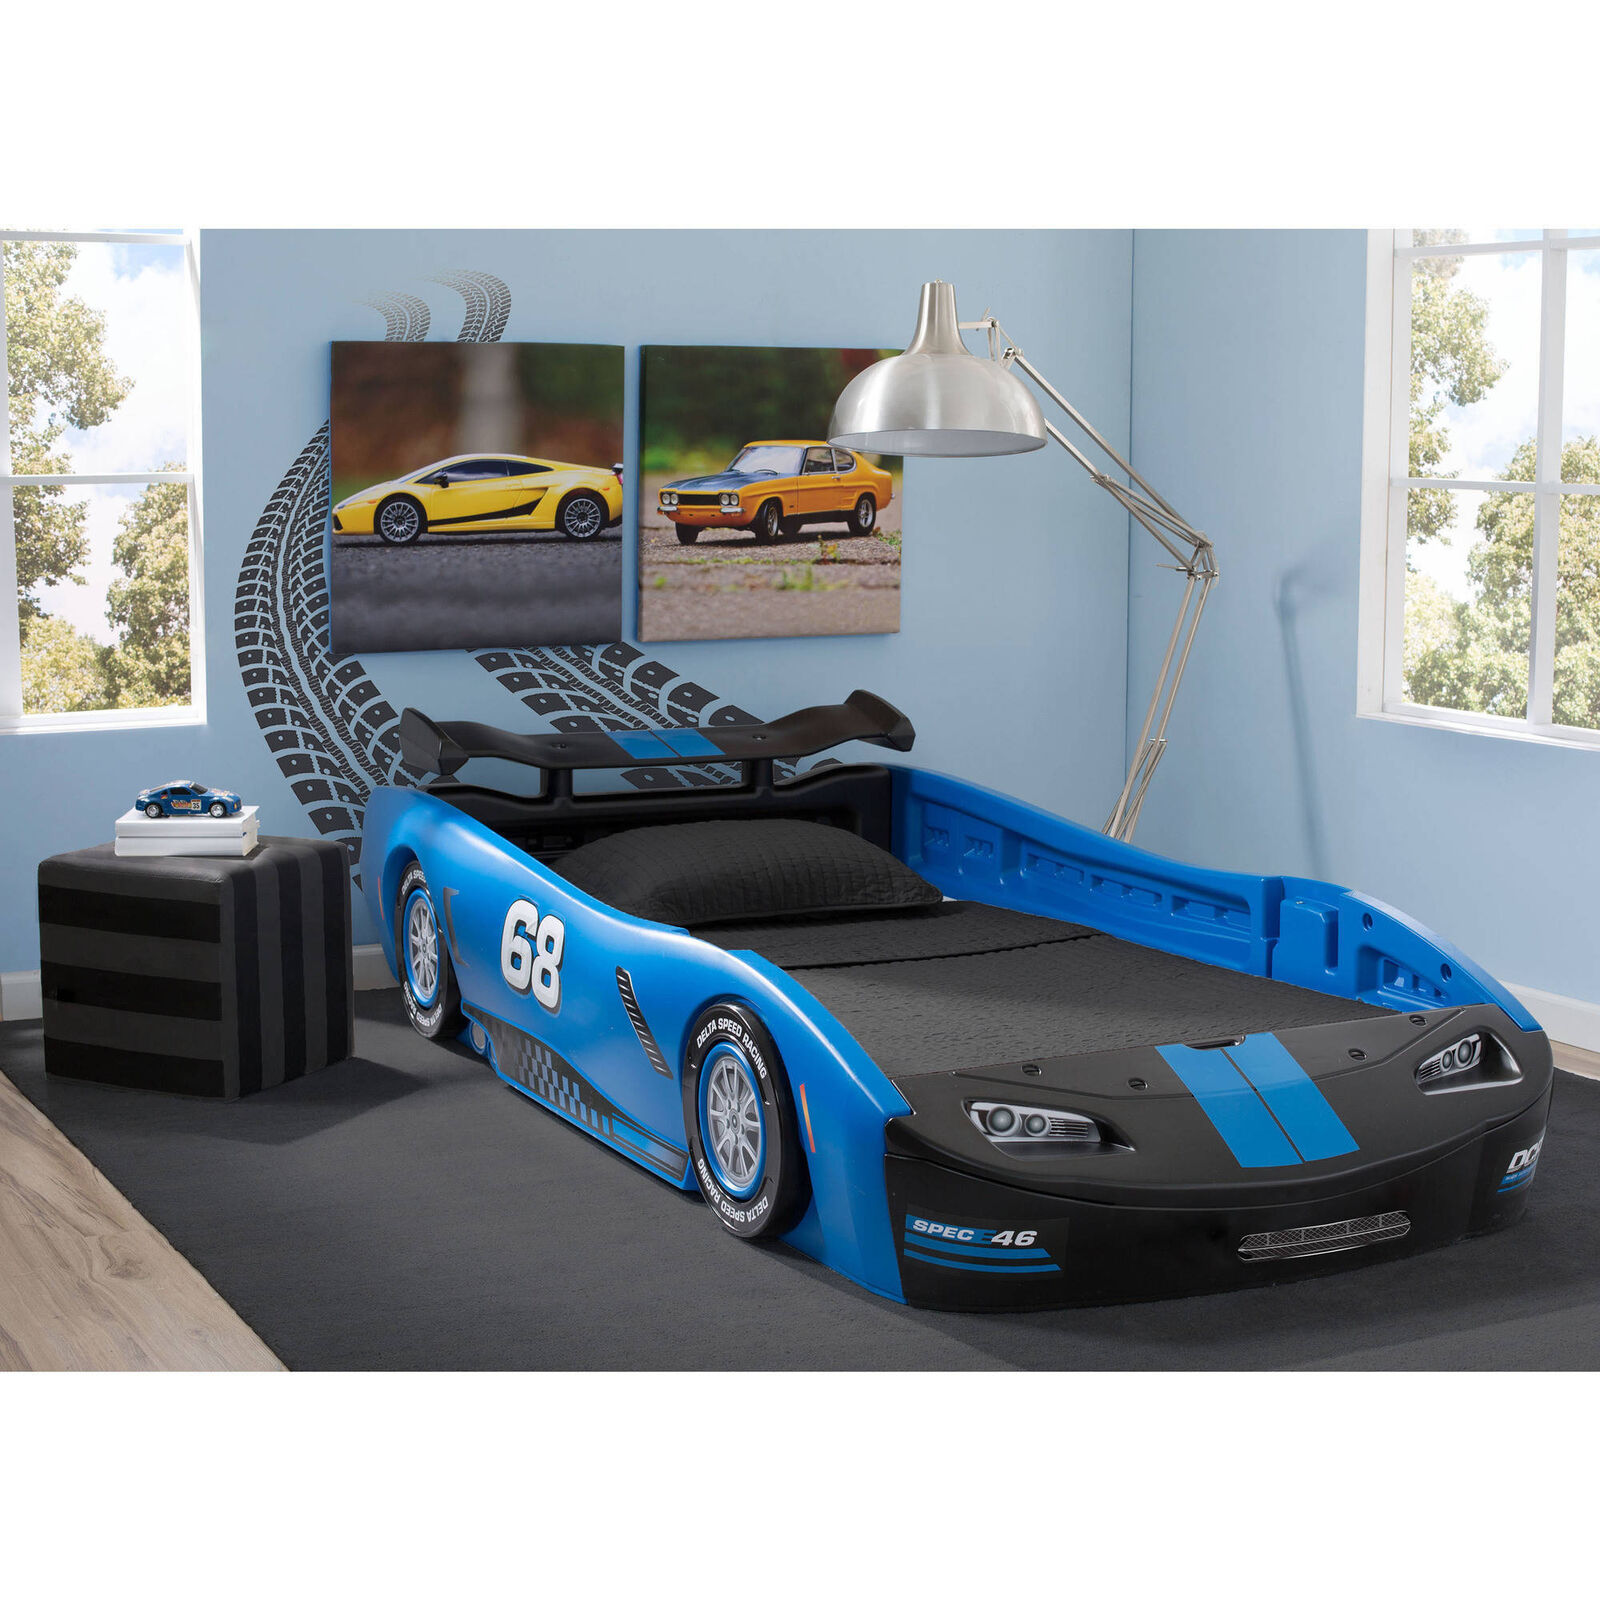 Best Boys Beds Twin Size Race Car Bed Turbo Sleek Kids Toddler Bedroom Furniture Nascar Unisex